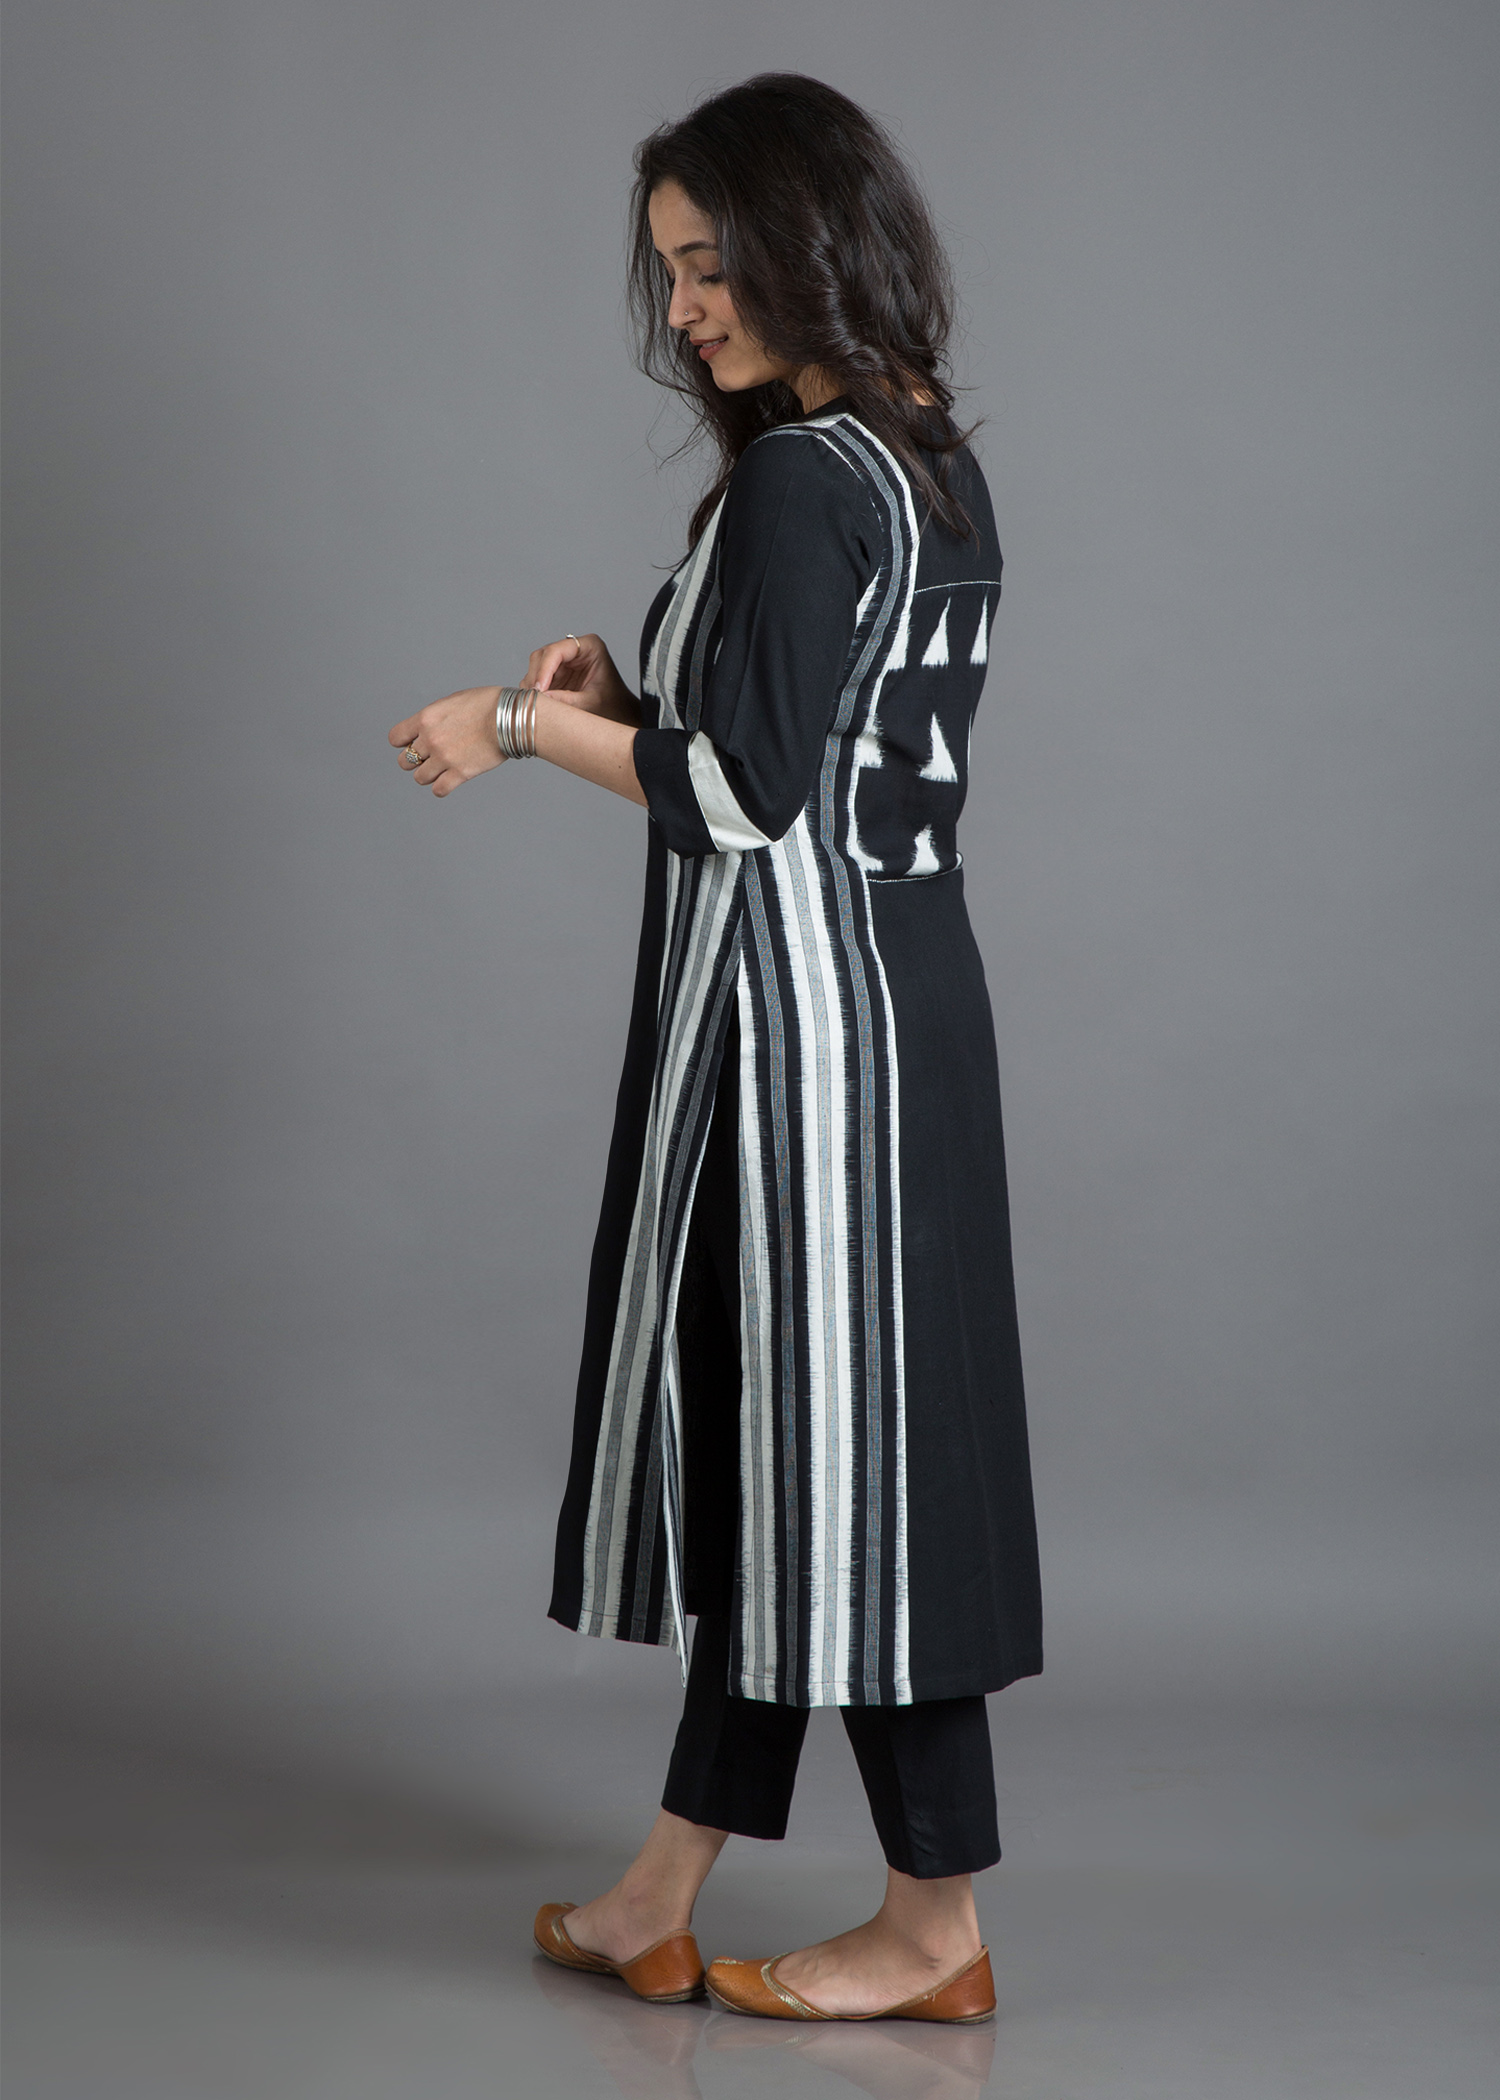 catalog/Winter 2018/BW kurta 3.jpg